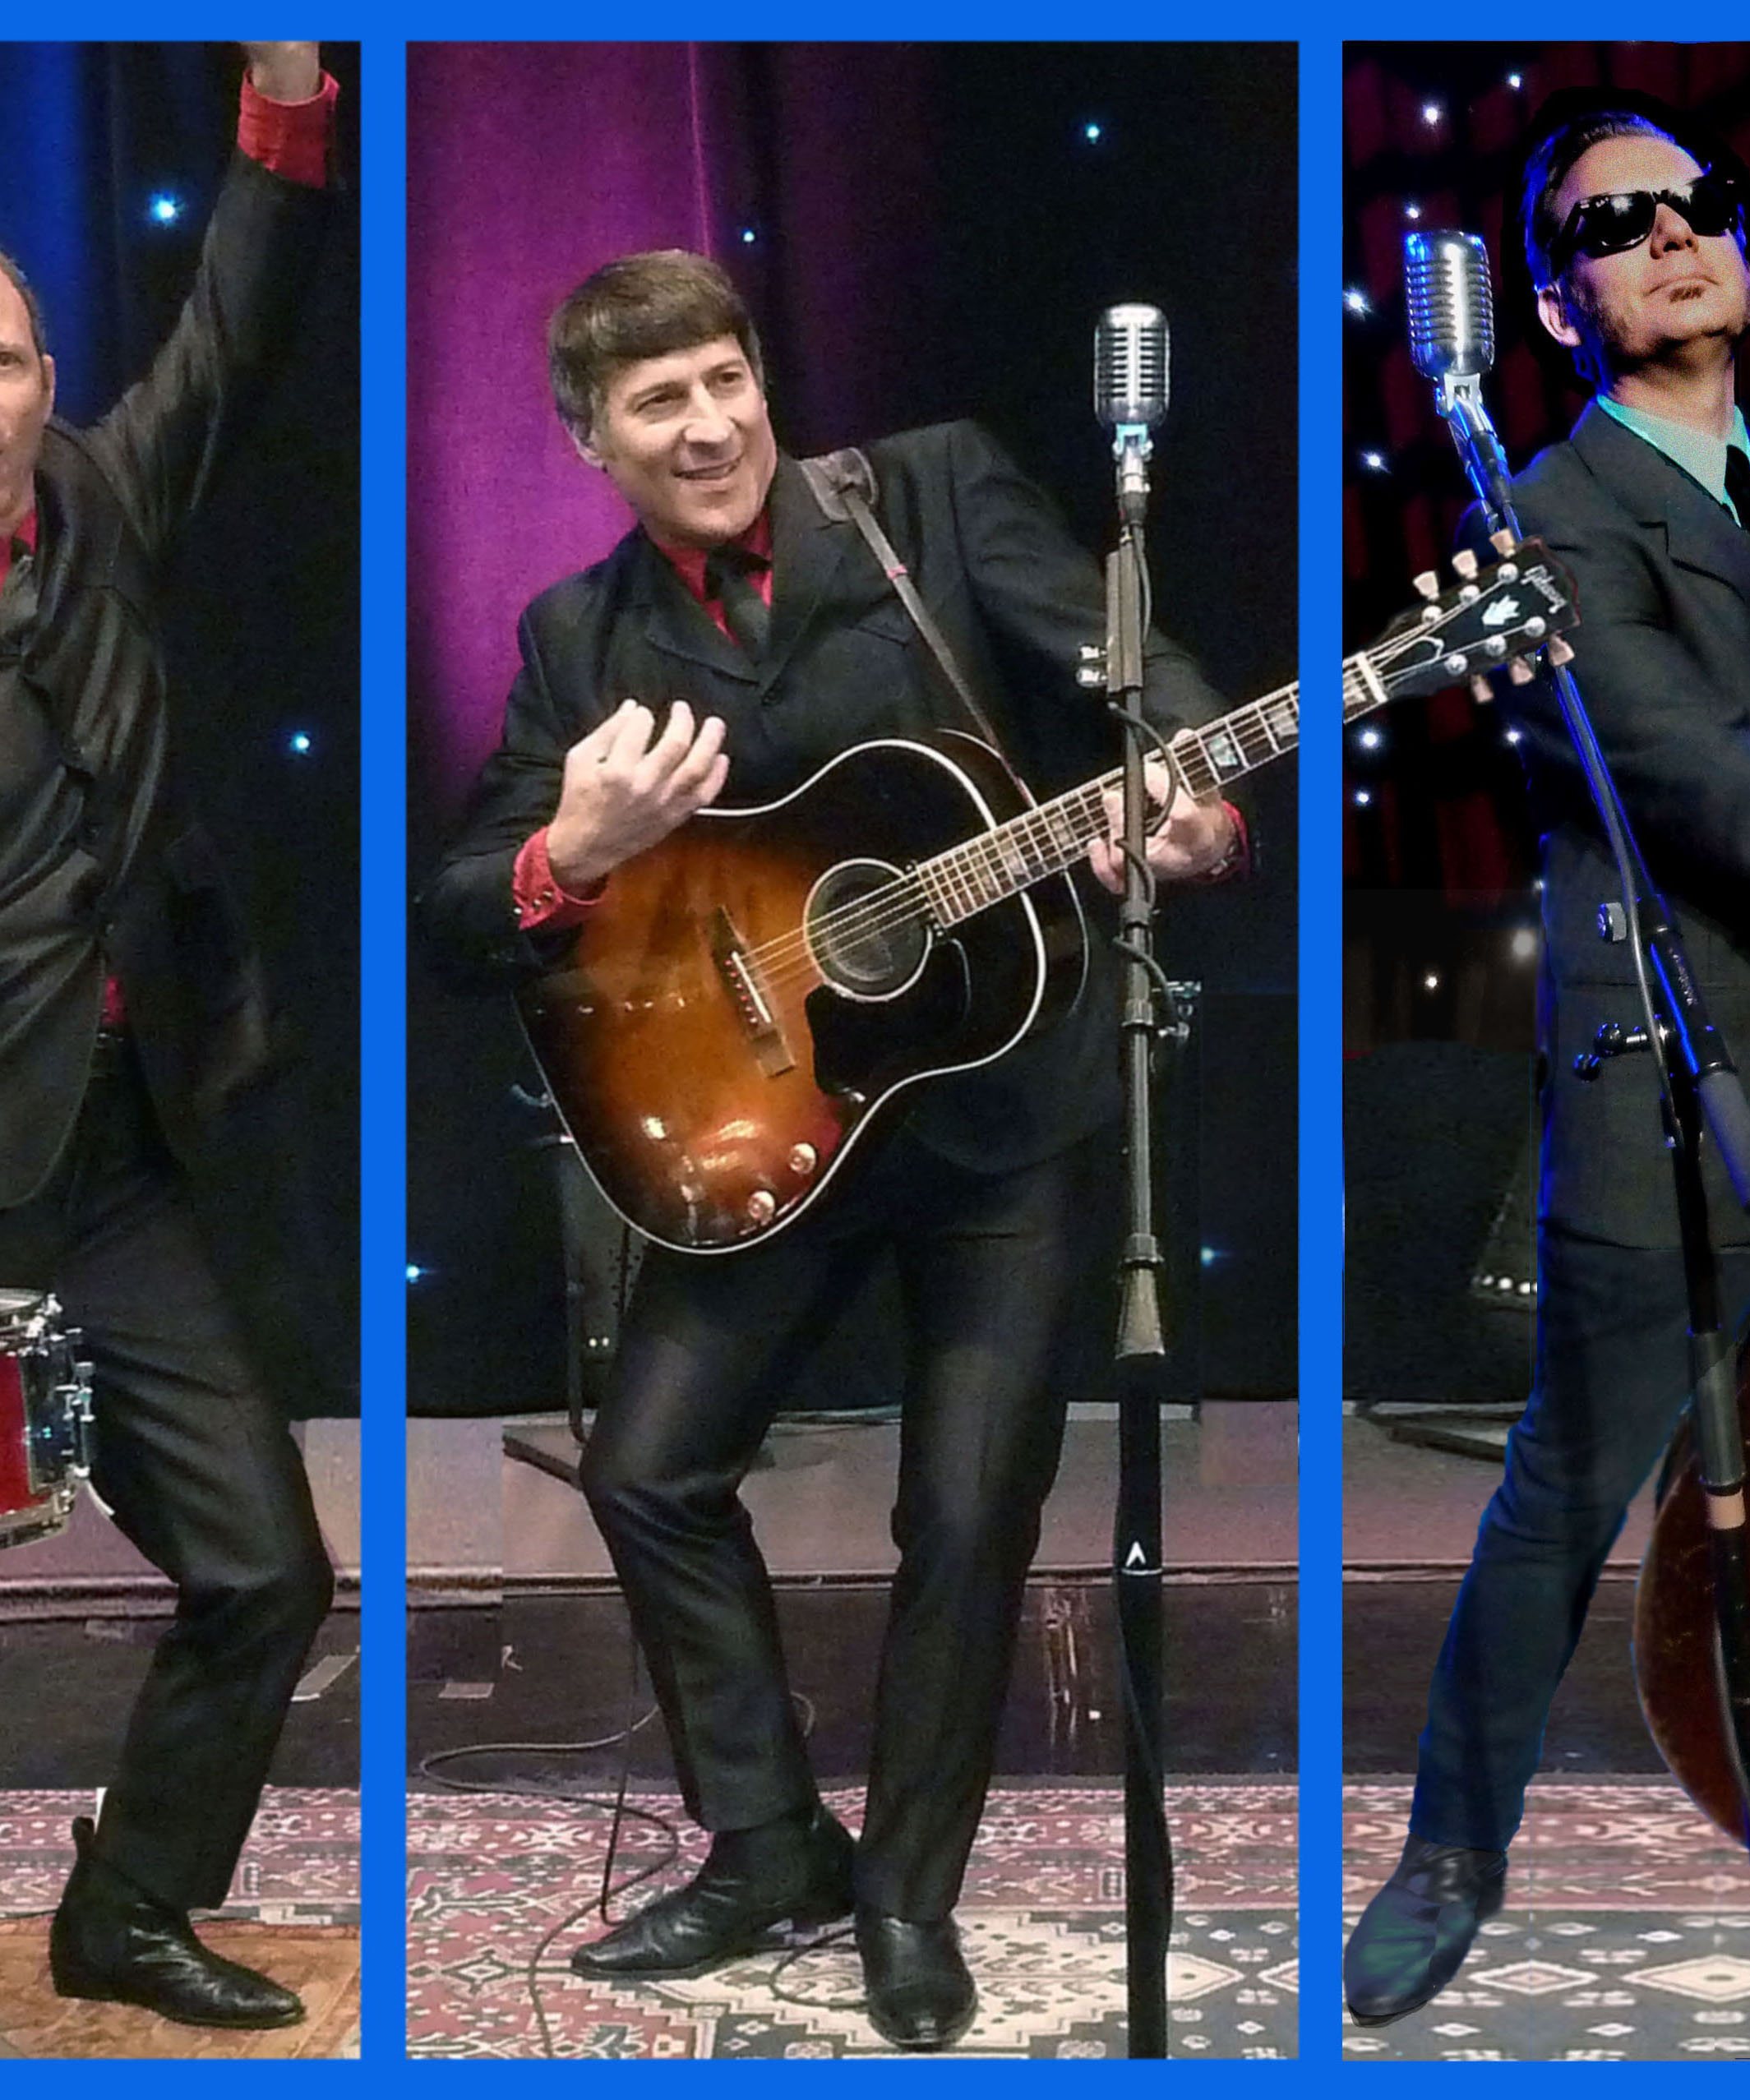 From Elvis to The Beatles featuring The Neverly Brothers